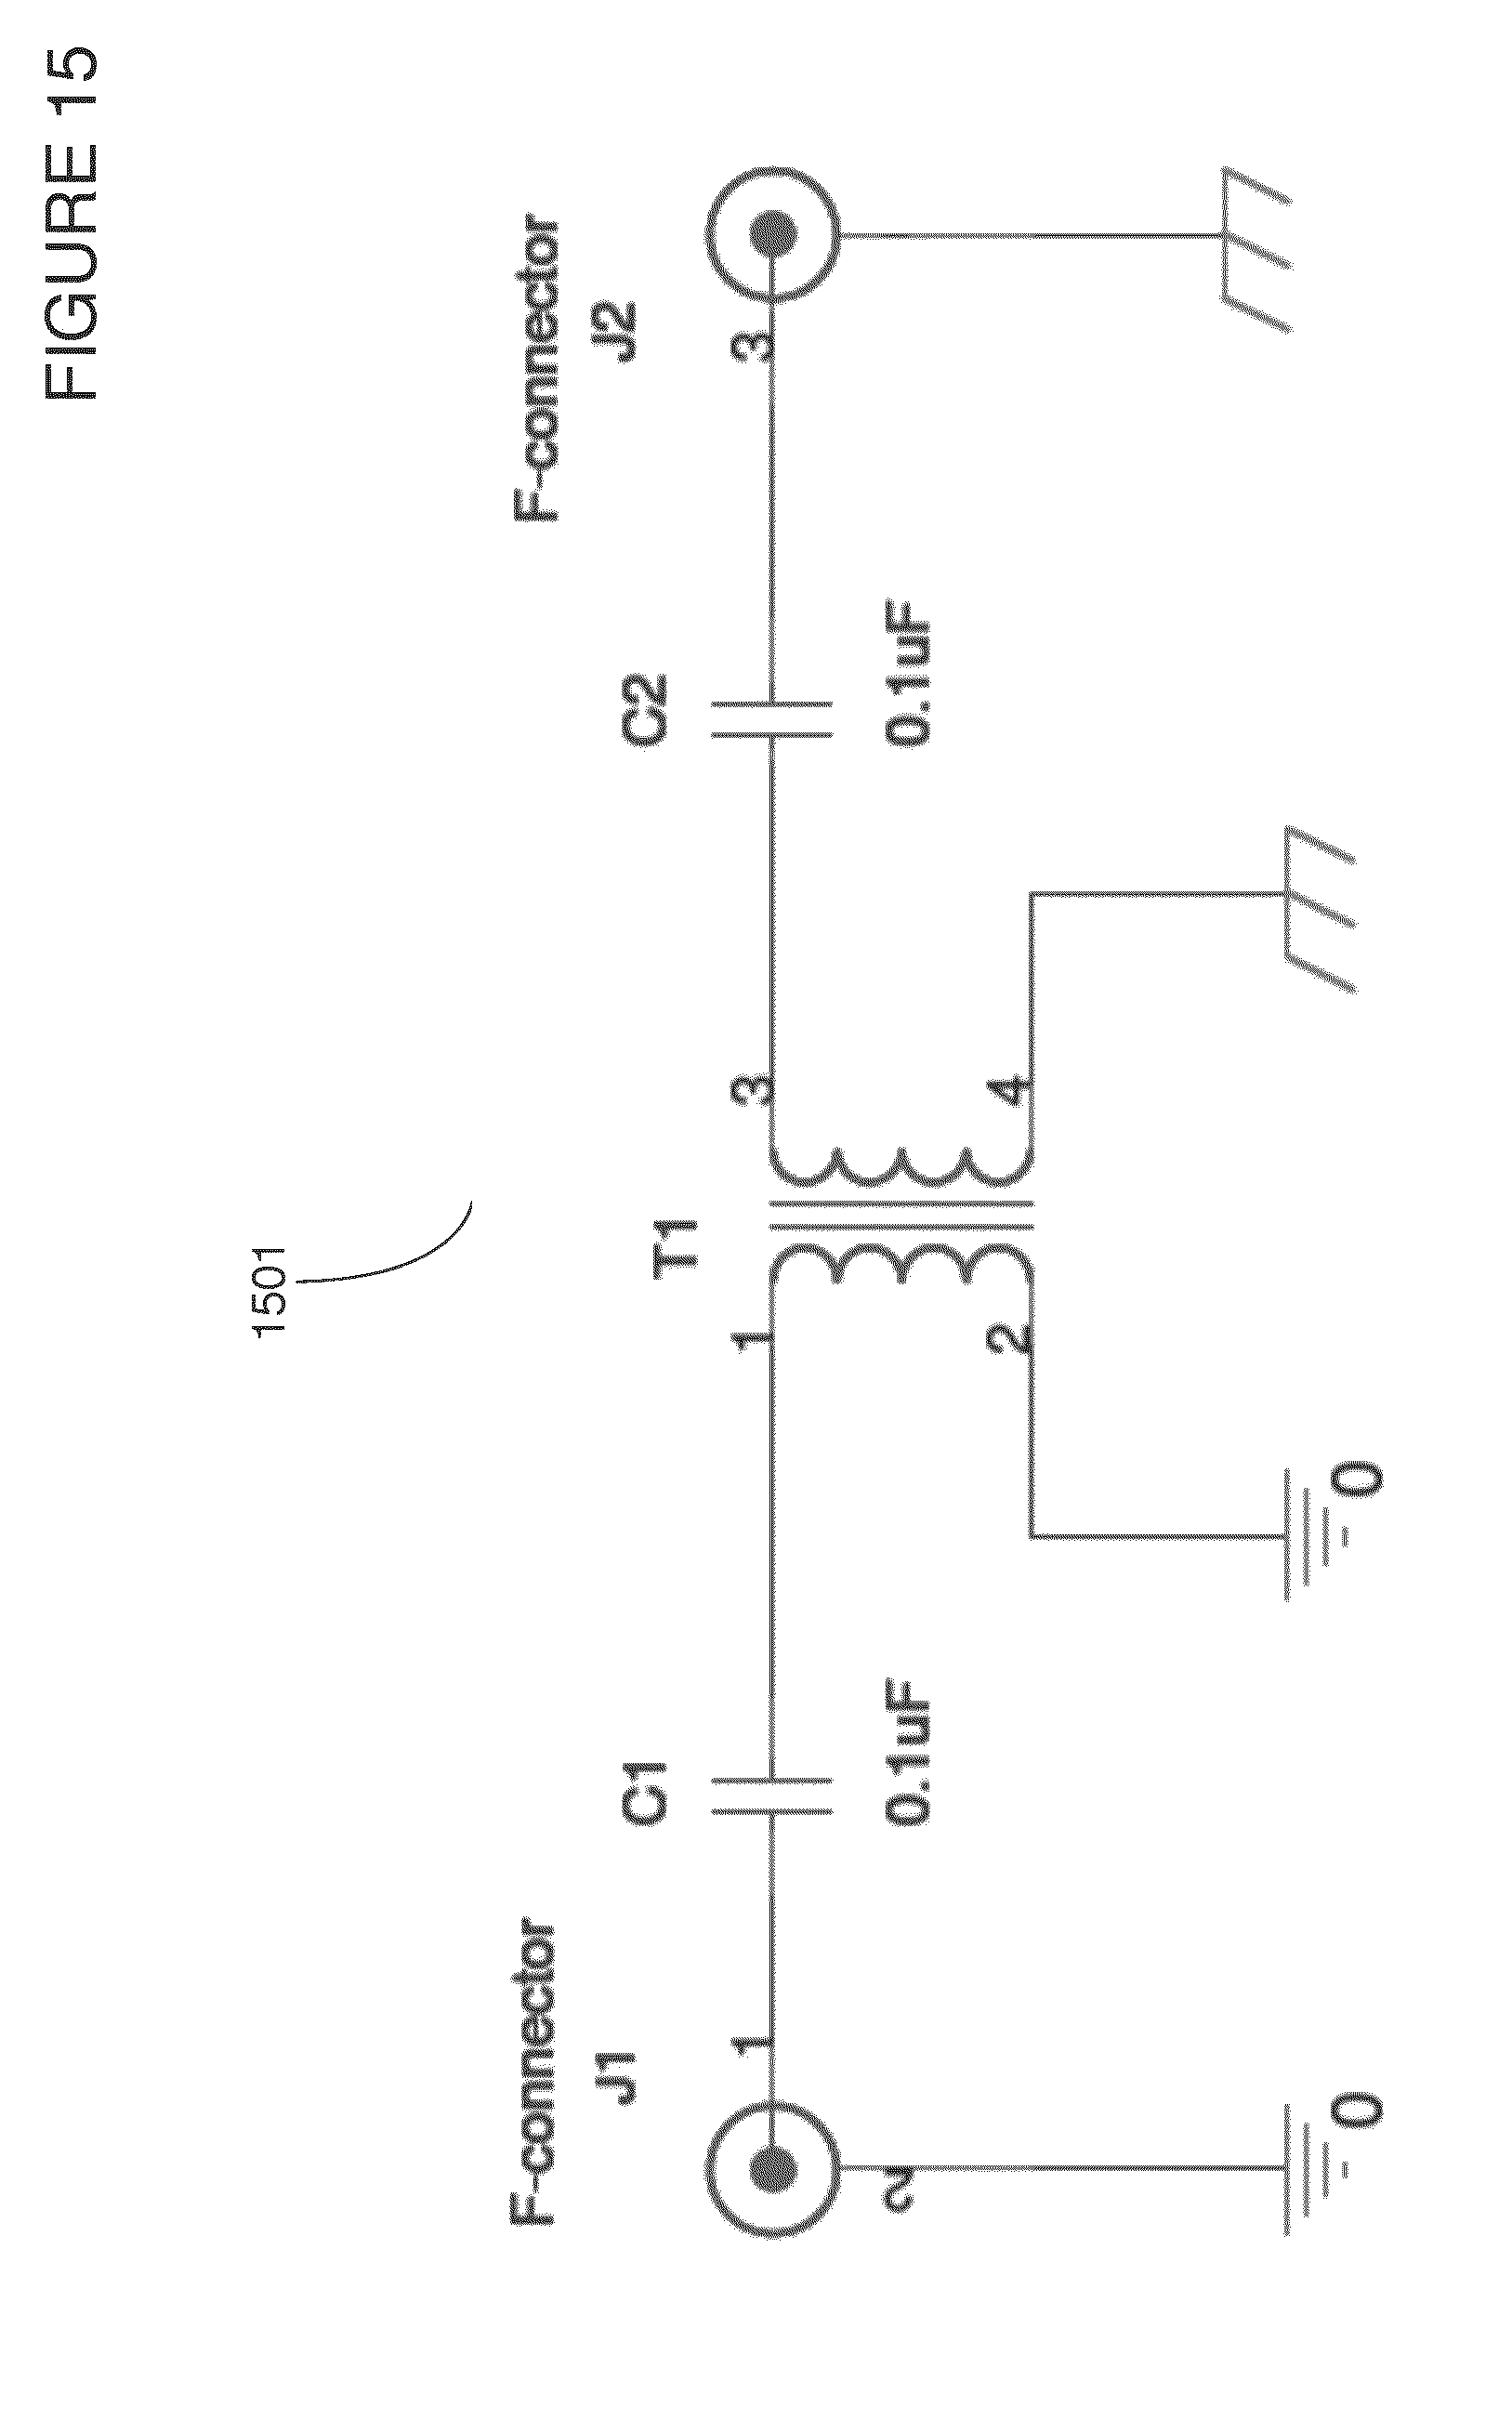 hight resolution of patent us20110248801 ground loop isolator for a coaxial cable